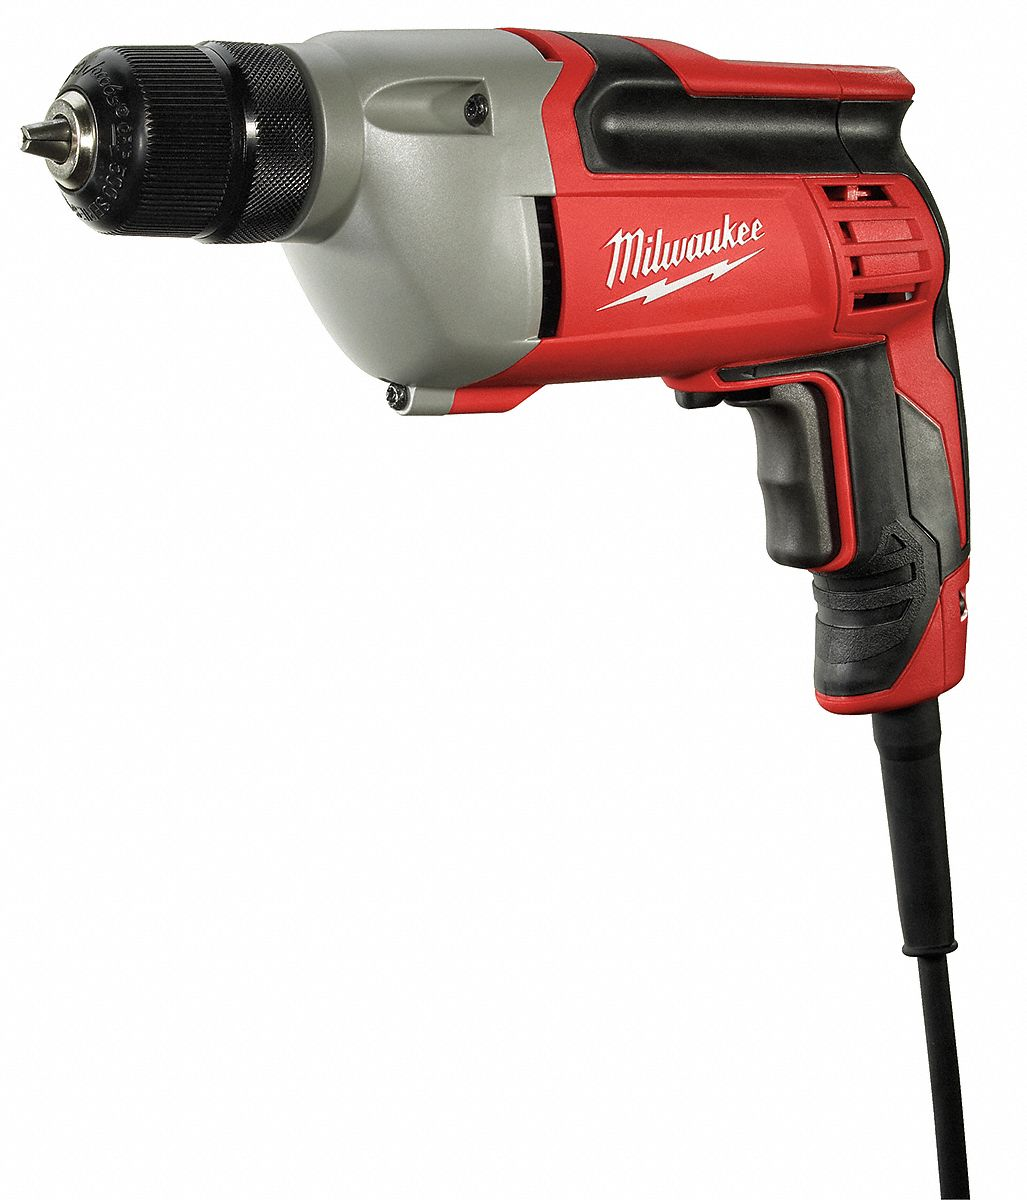 hight resolution of milwaukee electric drill 3 8 in 0 to 2800 rpm 8 0a 4vyz3 0240 20 grainger